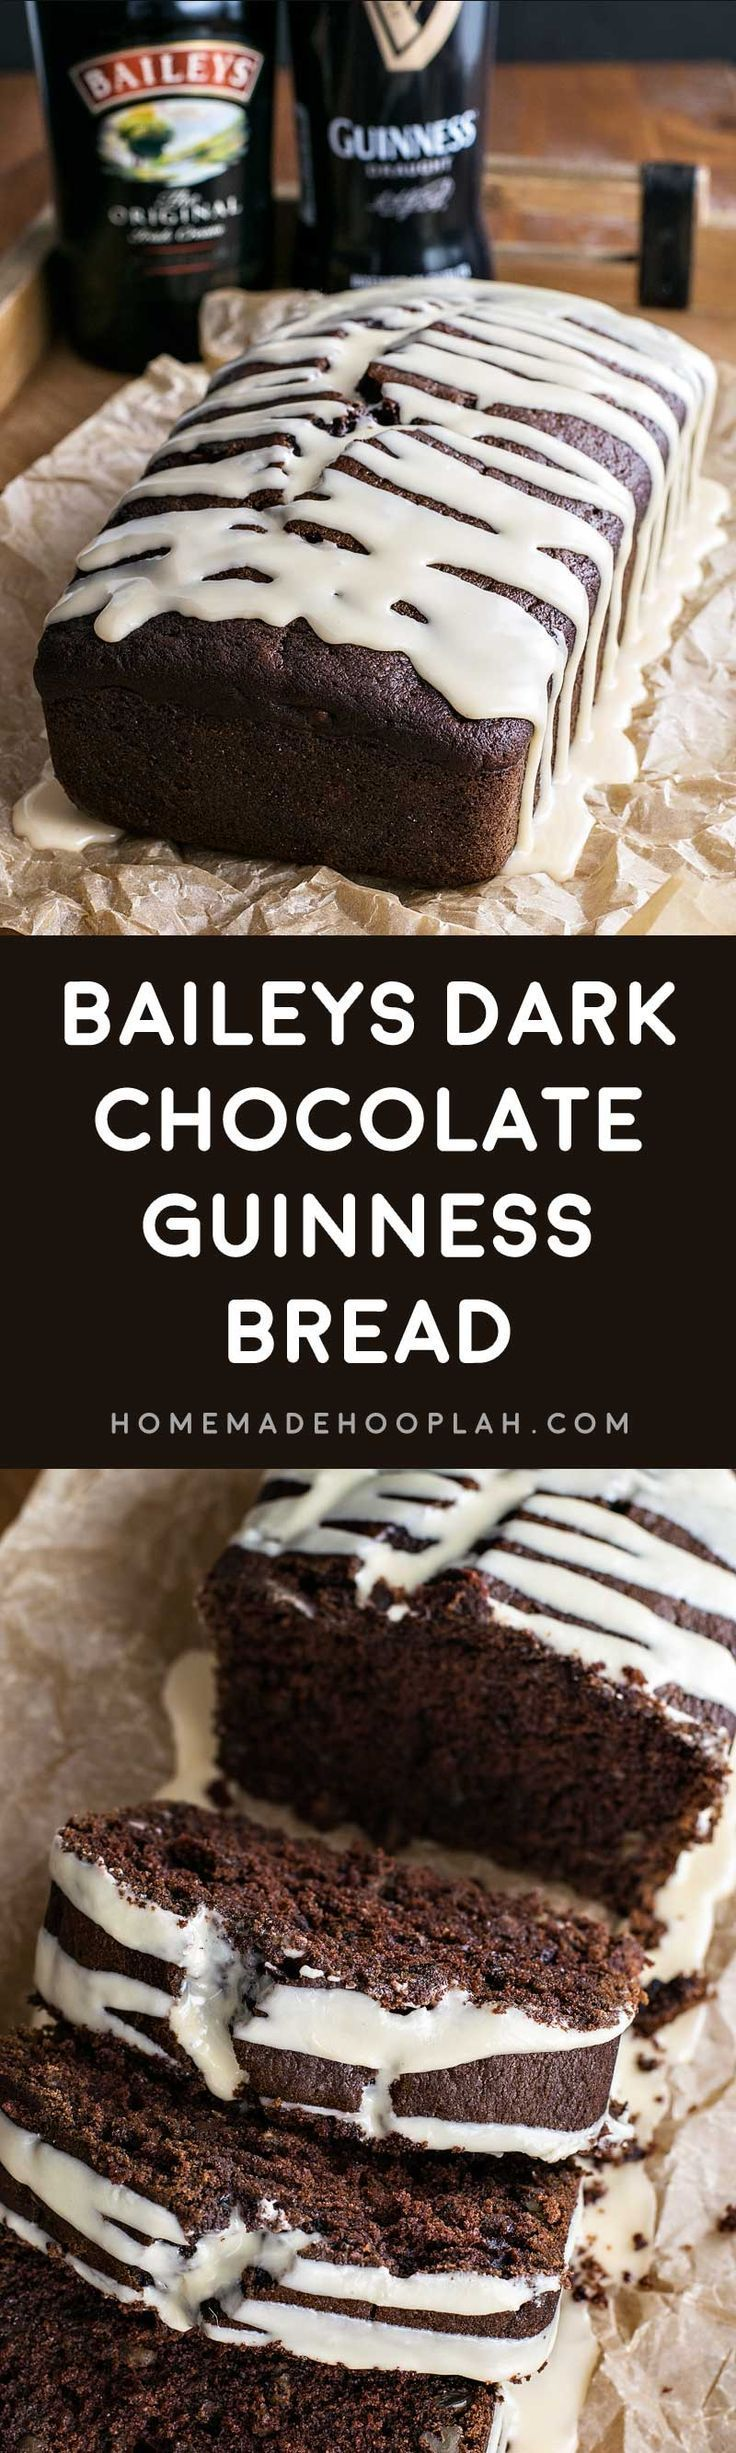 Baileys Dark Chocolate Guinness Bread! Rich and dark chocolate Guinness bread laced with chocolate chips and walnuts then frosted with a sweet Baileys glaze. | http://HomemadeHooplah.com